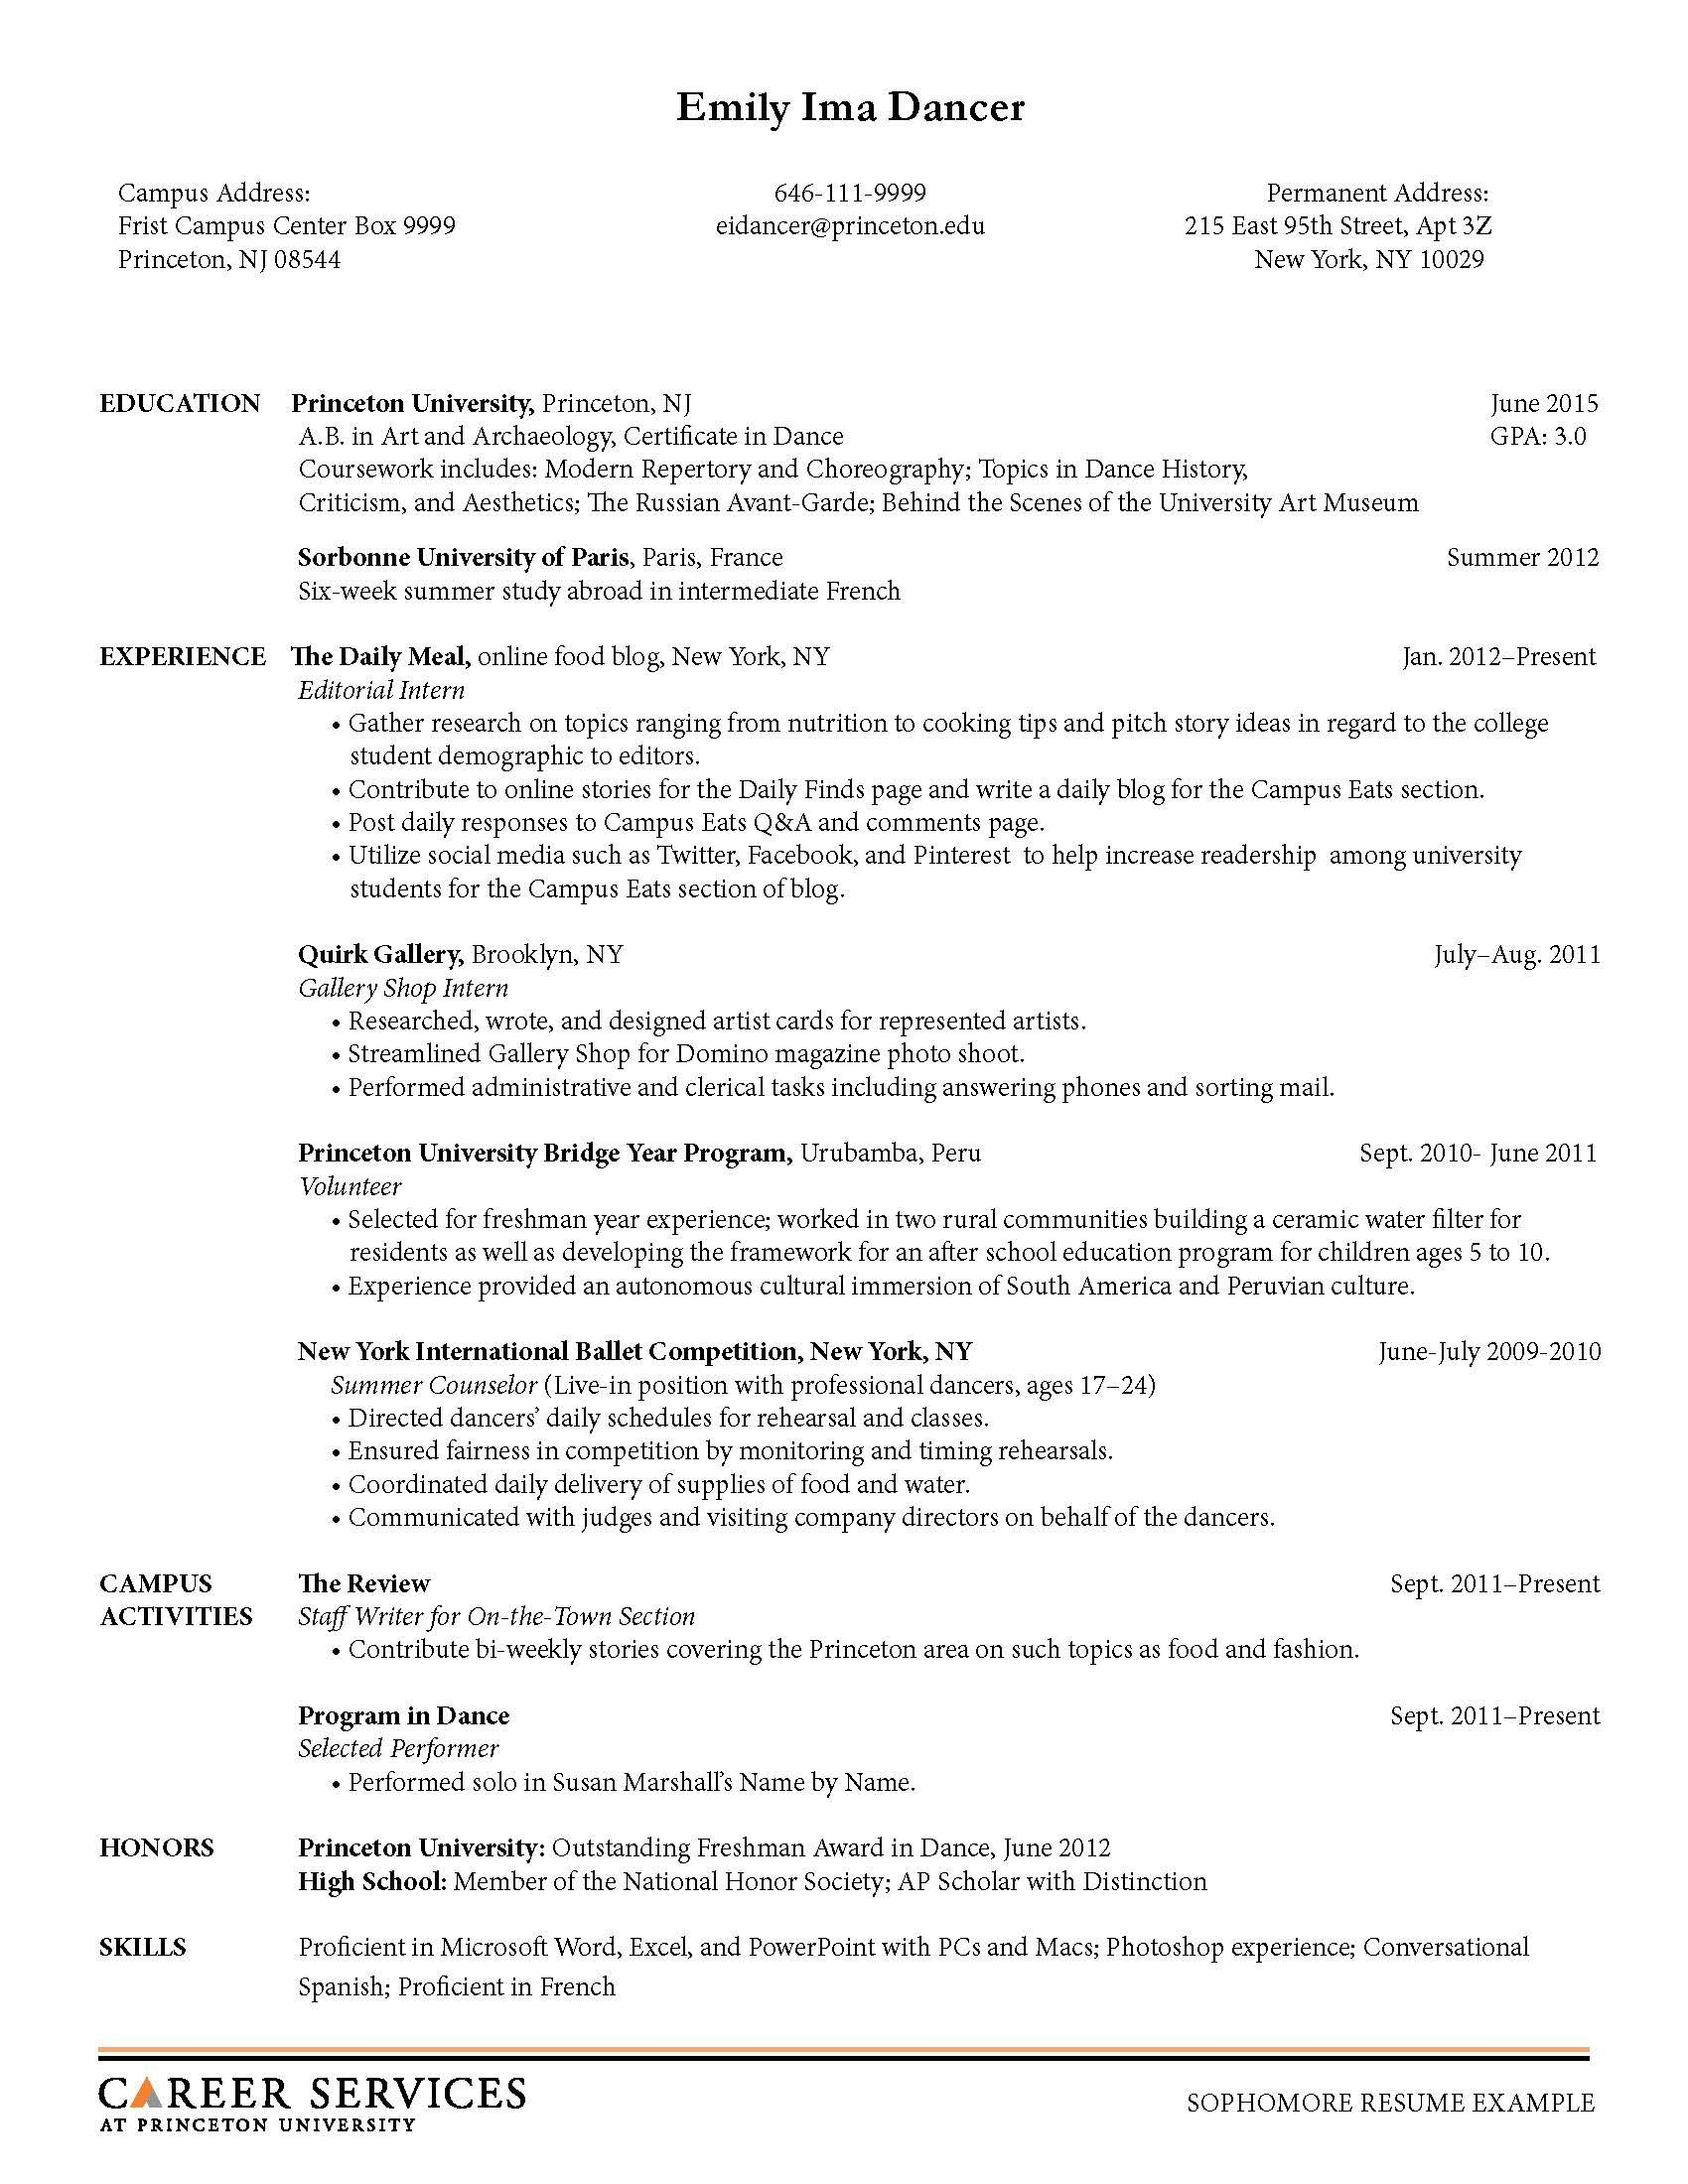 Opposenewapstandardsus  Ravishing Sample Resume Resume And Career On Pinterest With Luxury What Should My Resume Include Besides Accounting Supervisor Resume Furthermore Physician Assistant Resume Examples With Divine Professional Profile For Resume Also Head Cashier Resume In Addition Where To Make A Resume And Architecture Resume Sample As Well As Career Cruising Resume Additionally Risk Analyst Resume From Pinterestcom With Opposenewapstandardsus  Luxury Sample Resume Resume And Career On Pinterest With Divine What Should My Resume Include Besides Accounting Supervisor Resume Furthermore Physician Assistant Resume Examples And Ravishing Professional Profile For Resume Also Head Cashier Resume In Addition Where To Make A Resume From Pinterestcom